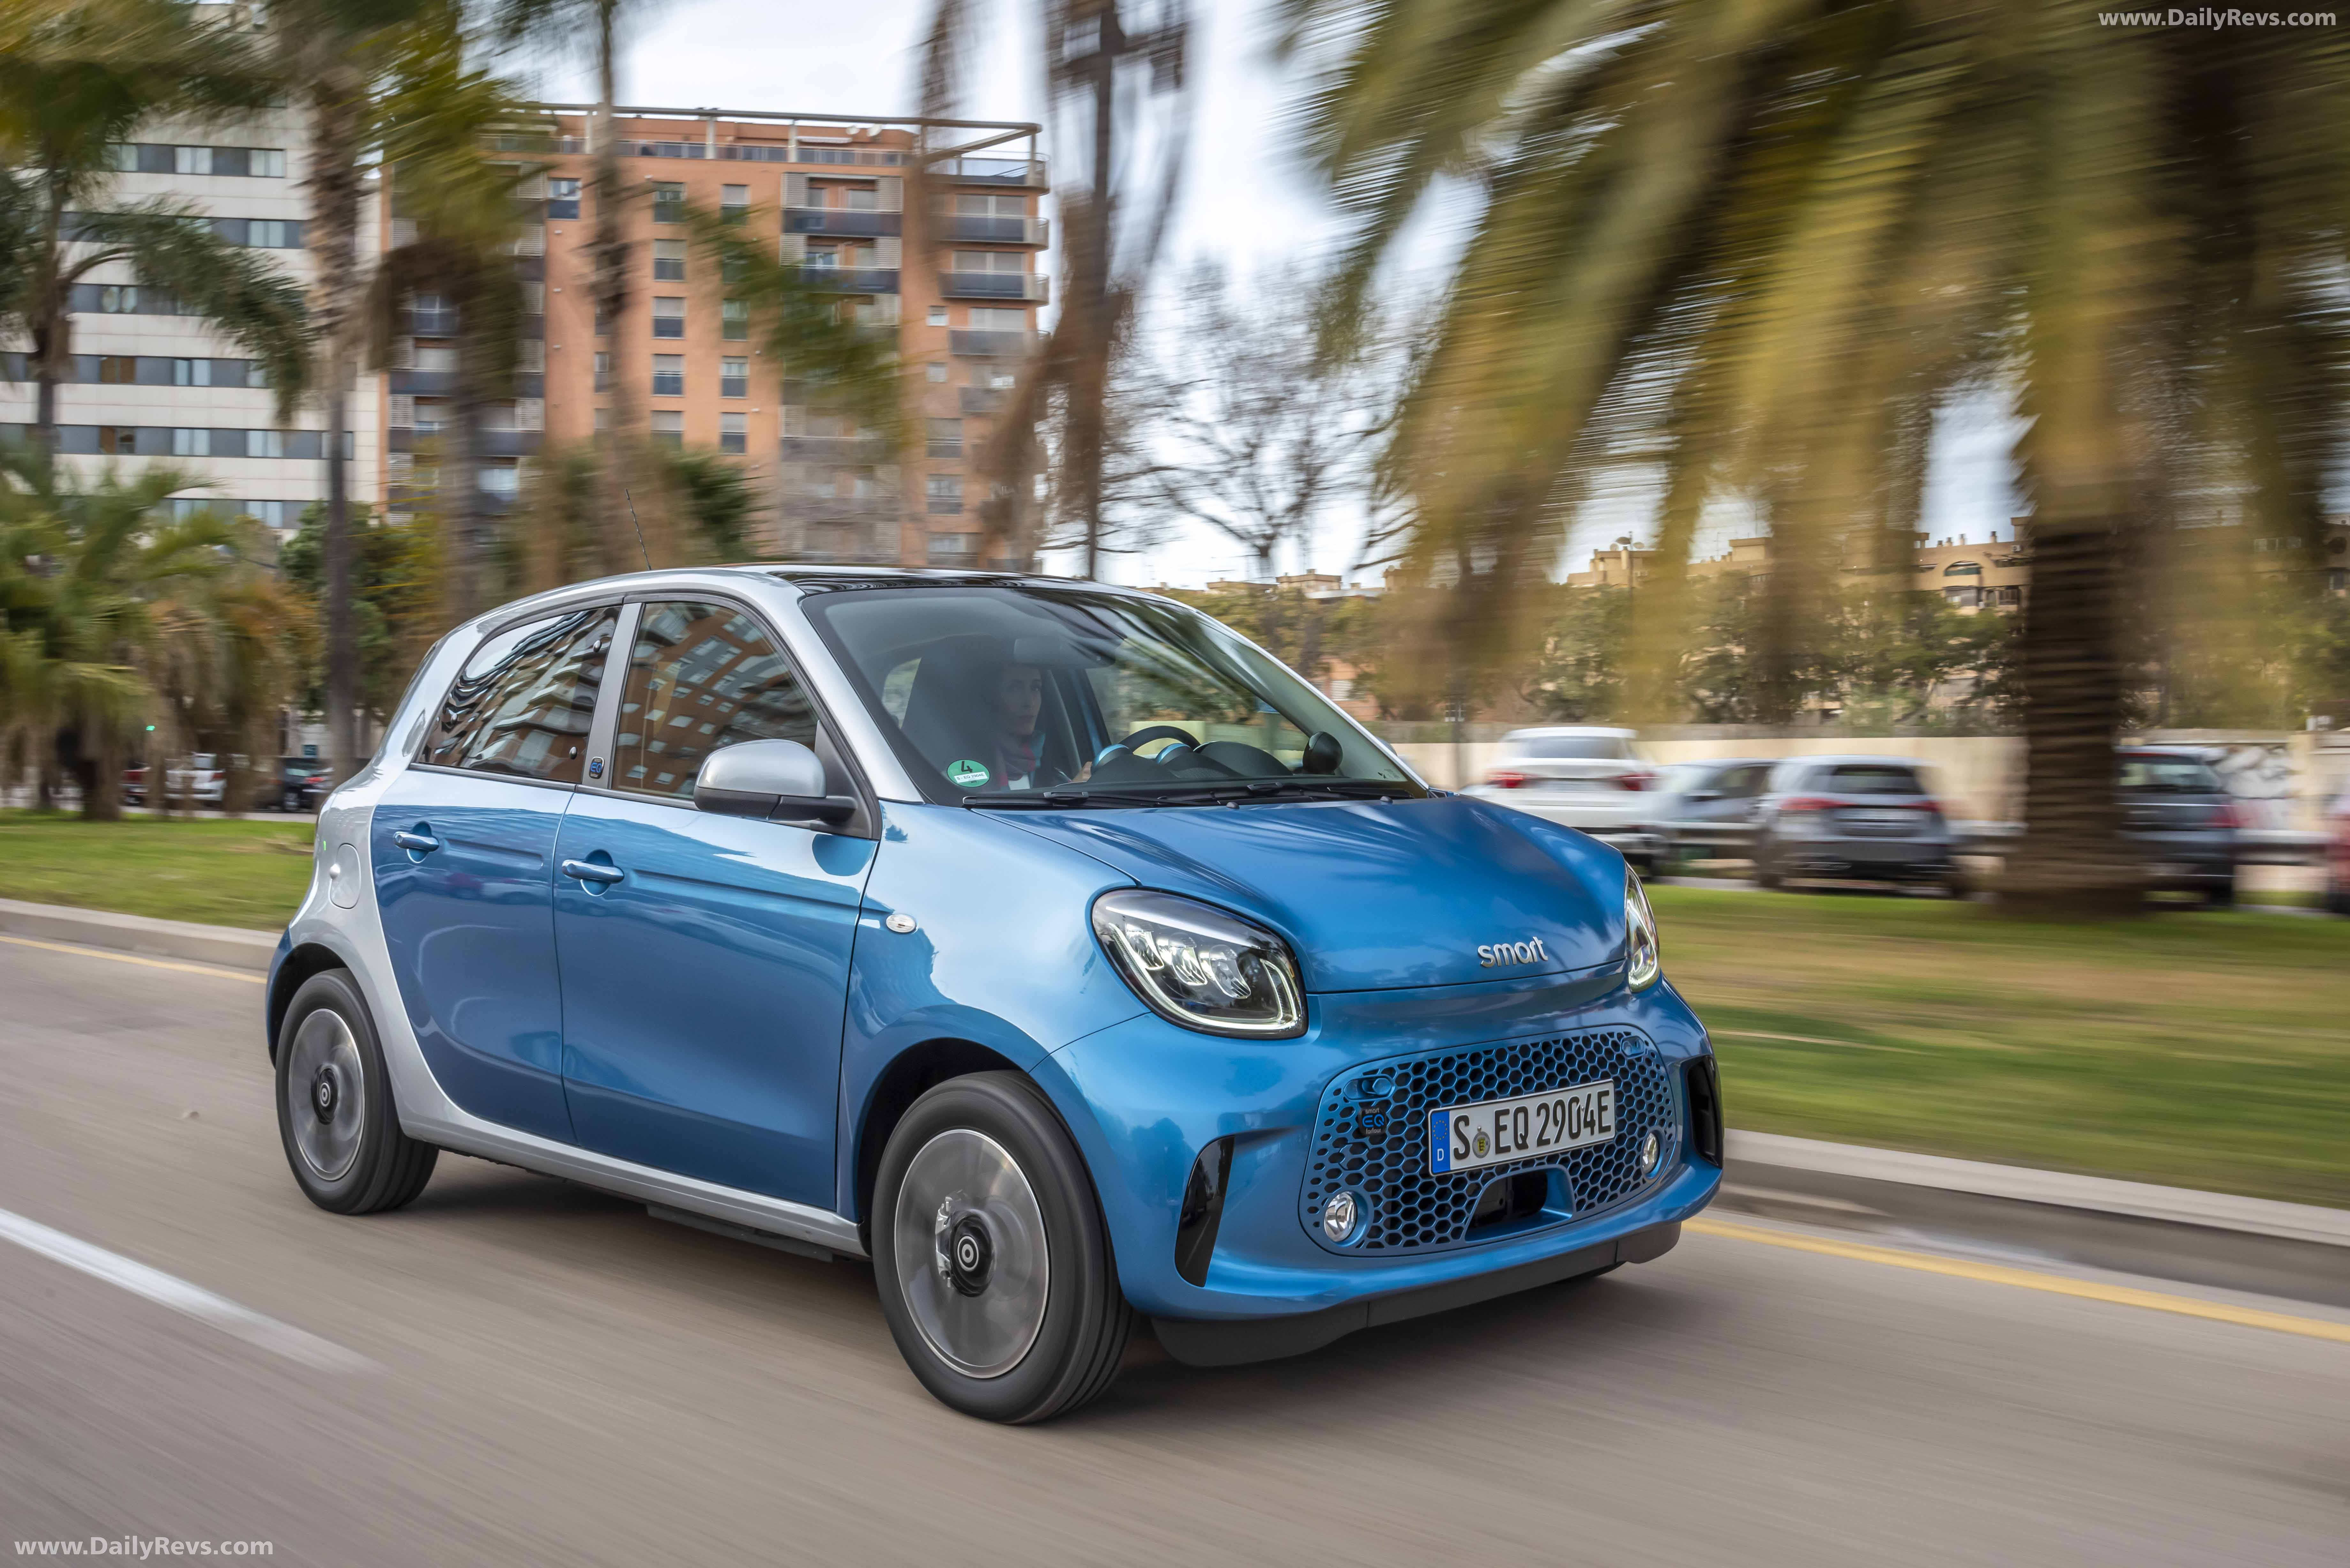 2020 Smart EQ forfour - HD Pictures. Videos. Specs & Information - Dailyrevs